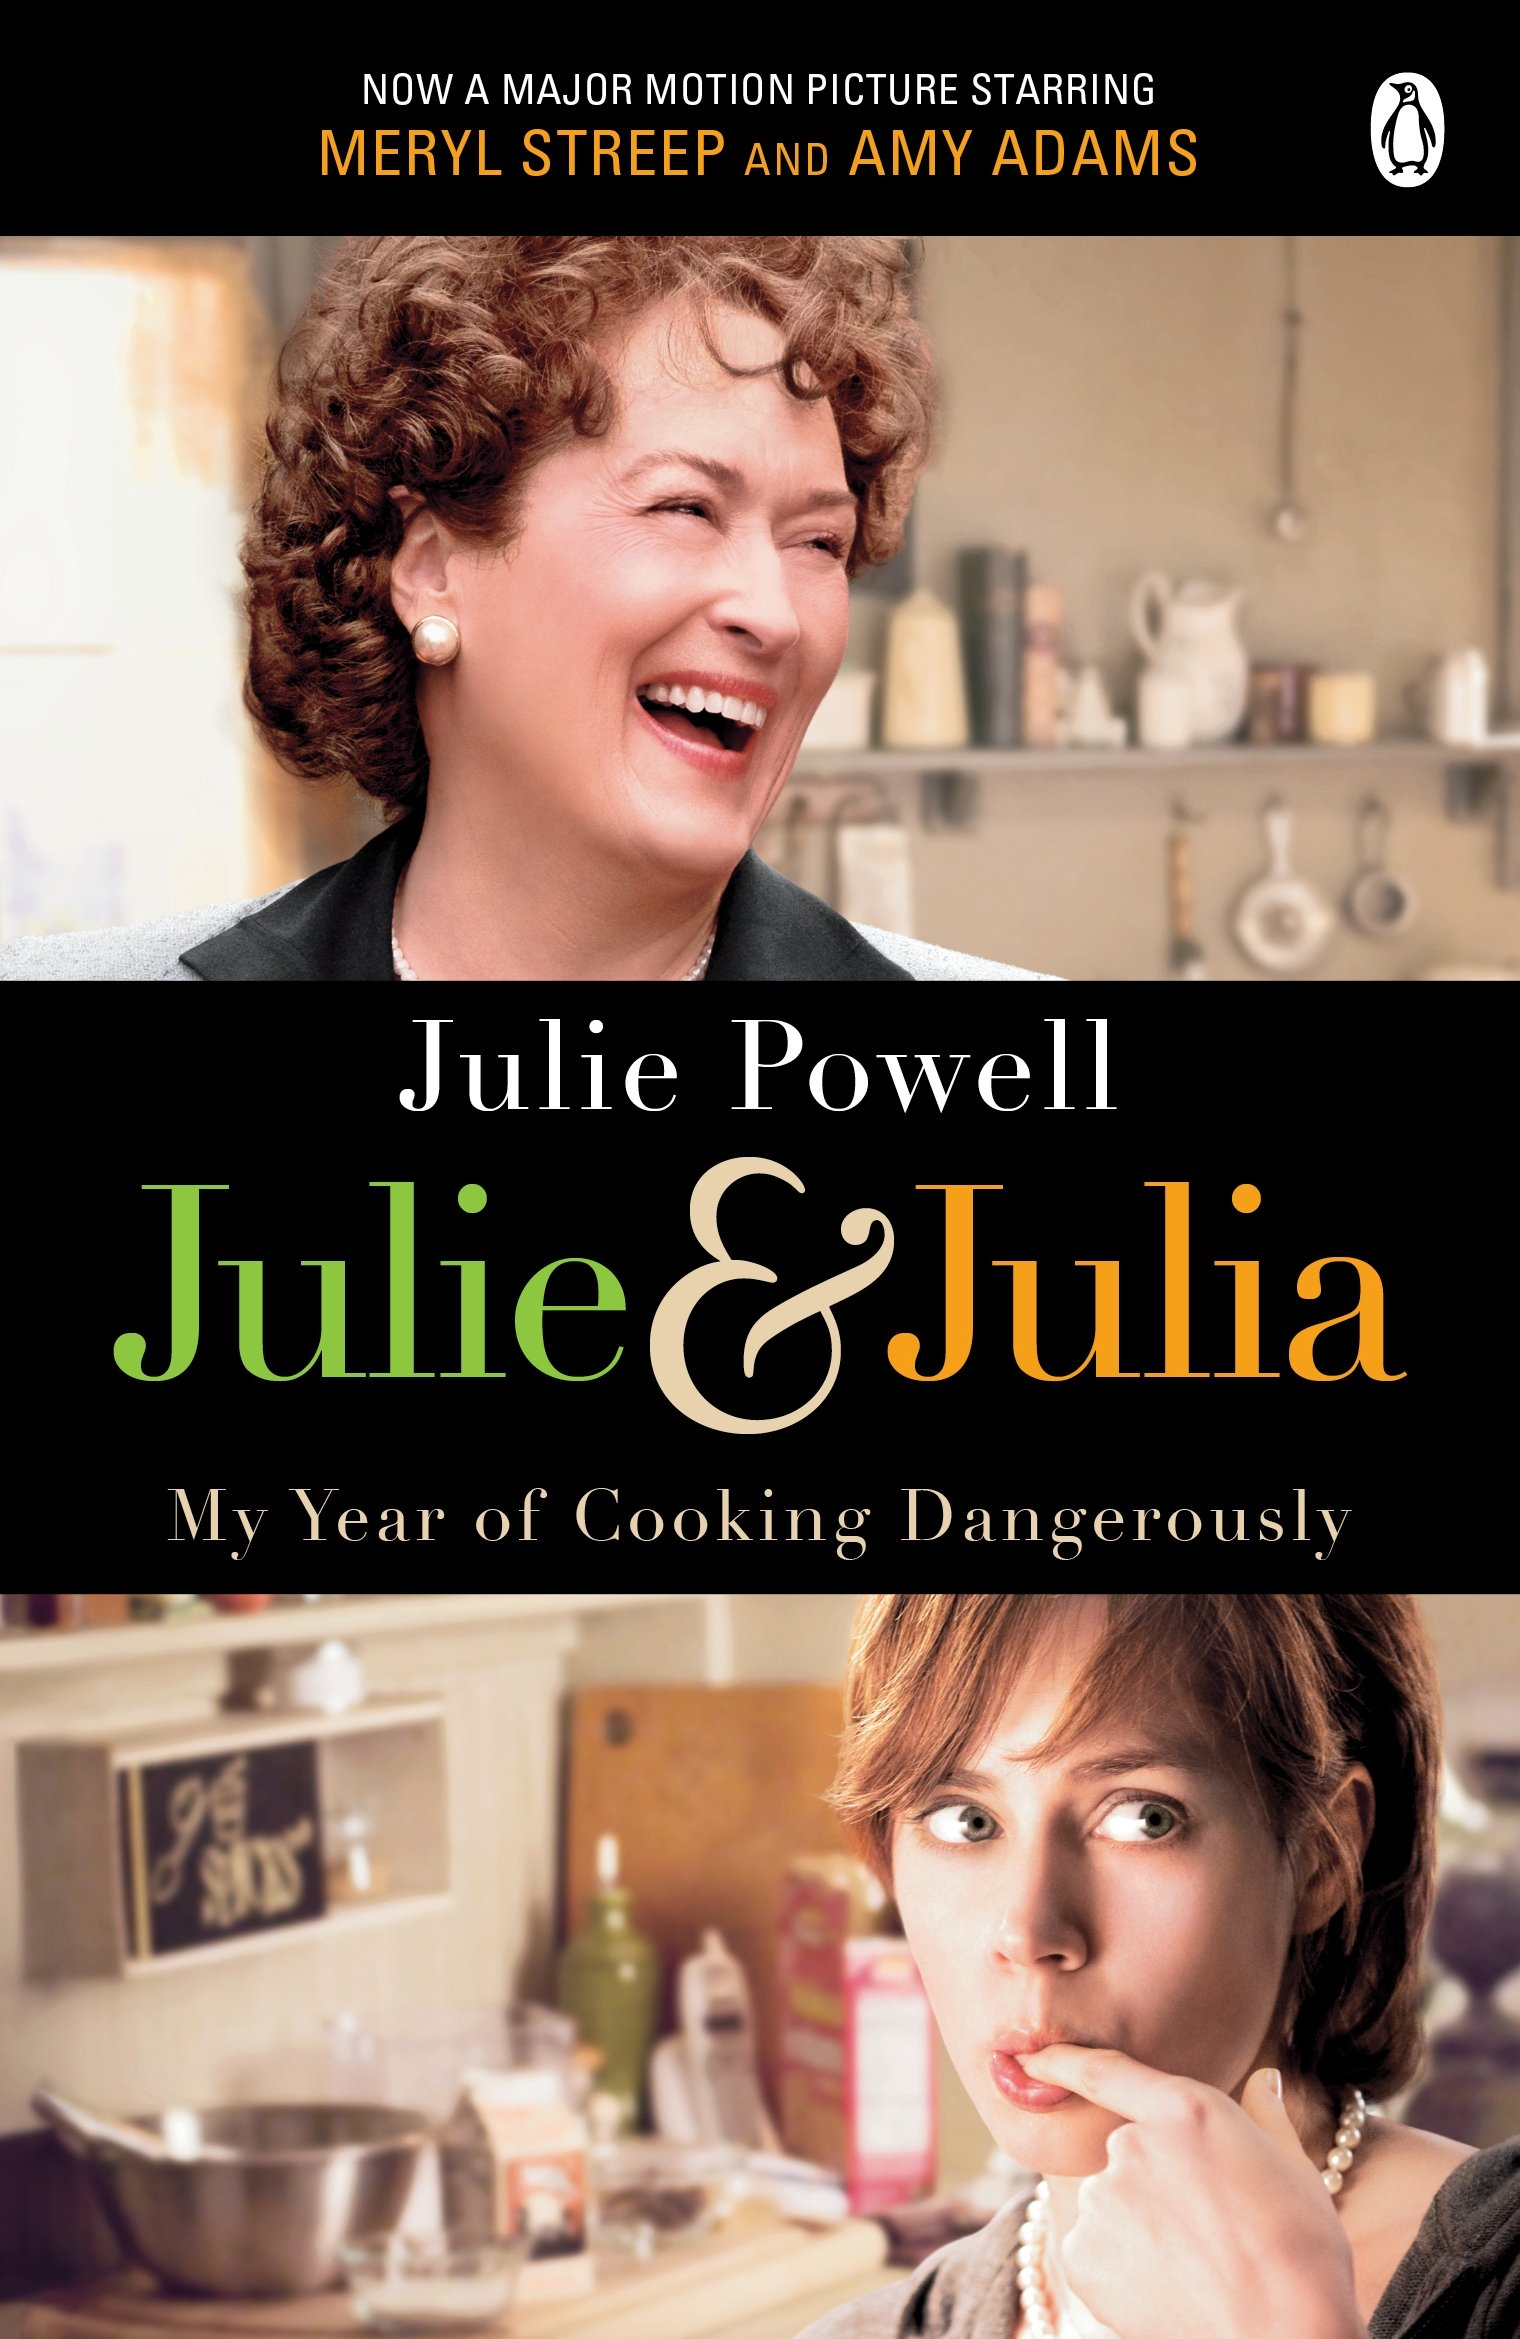 Julie Powell Julia Childs